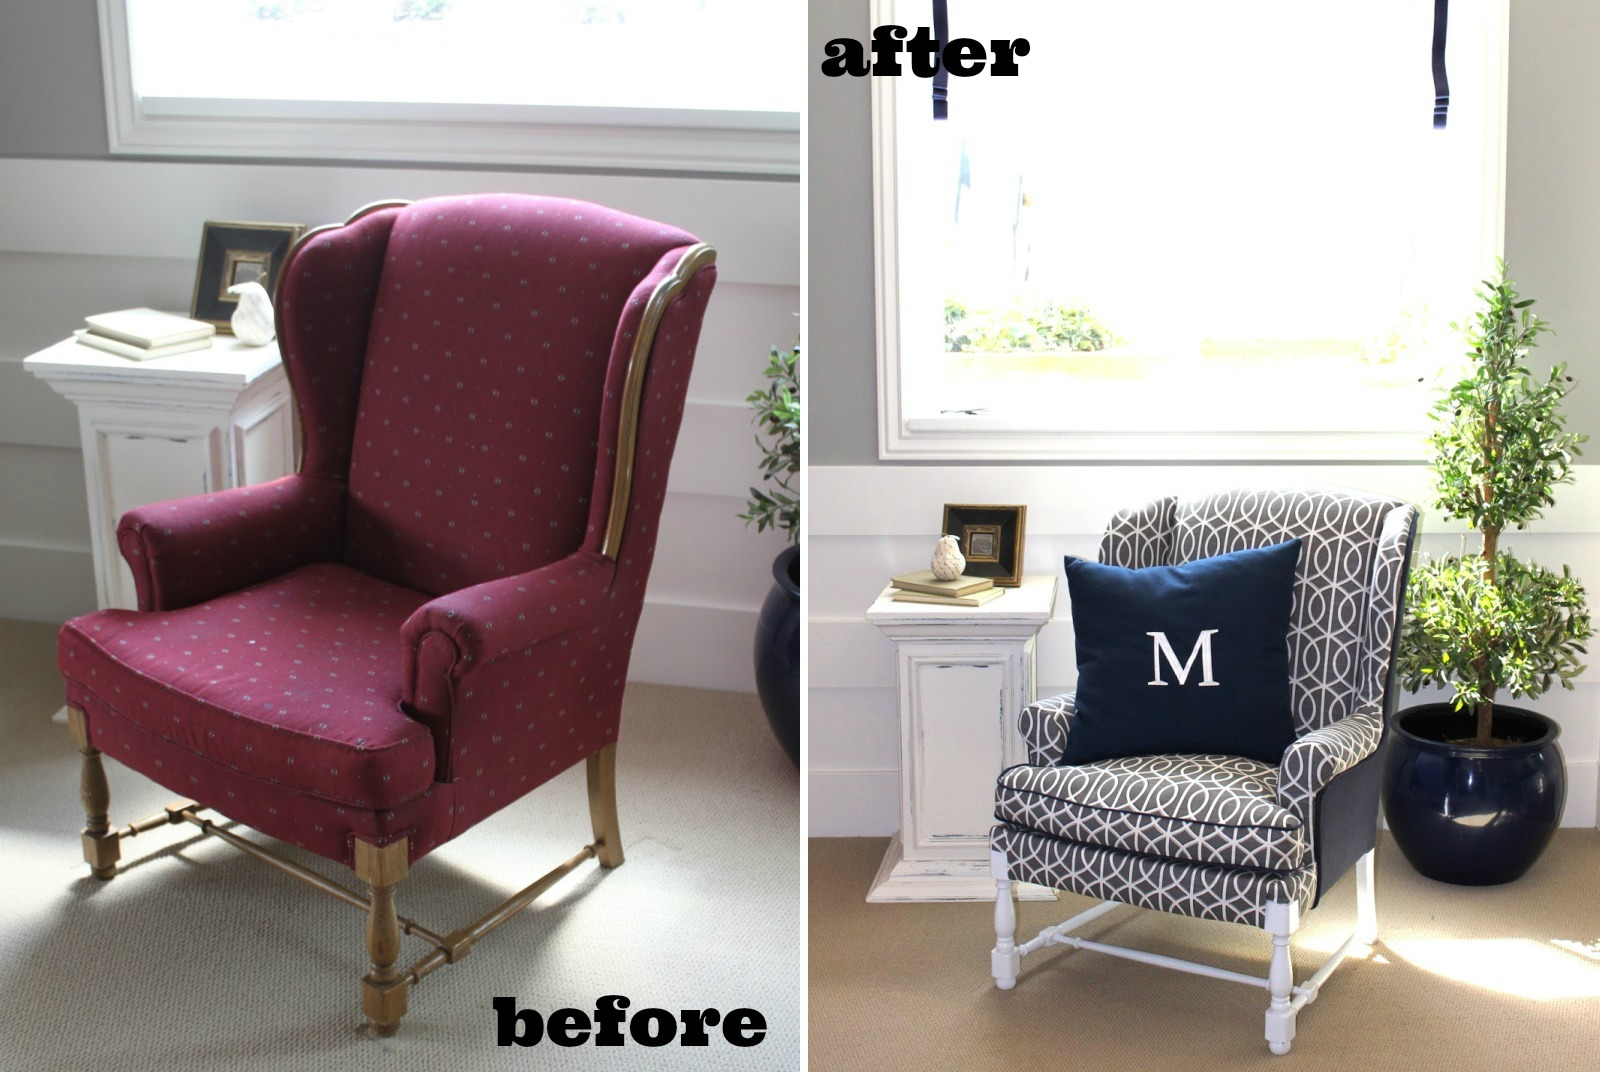 Musical Before And After Chair Home Decorating Trends 954bartend - Sonic-chair-modern-relaxing-chair-with-20-inch-imac